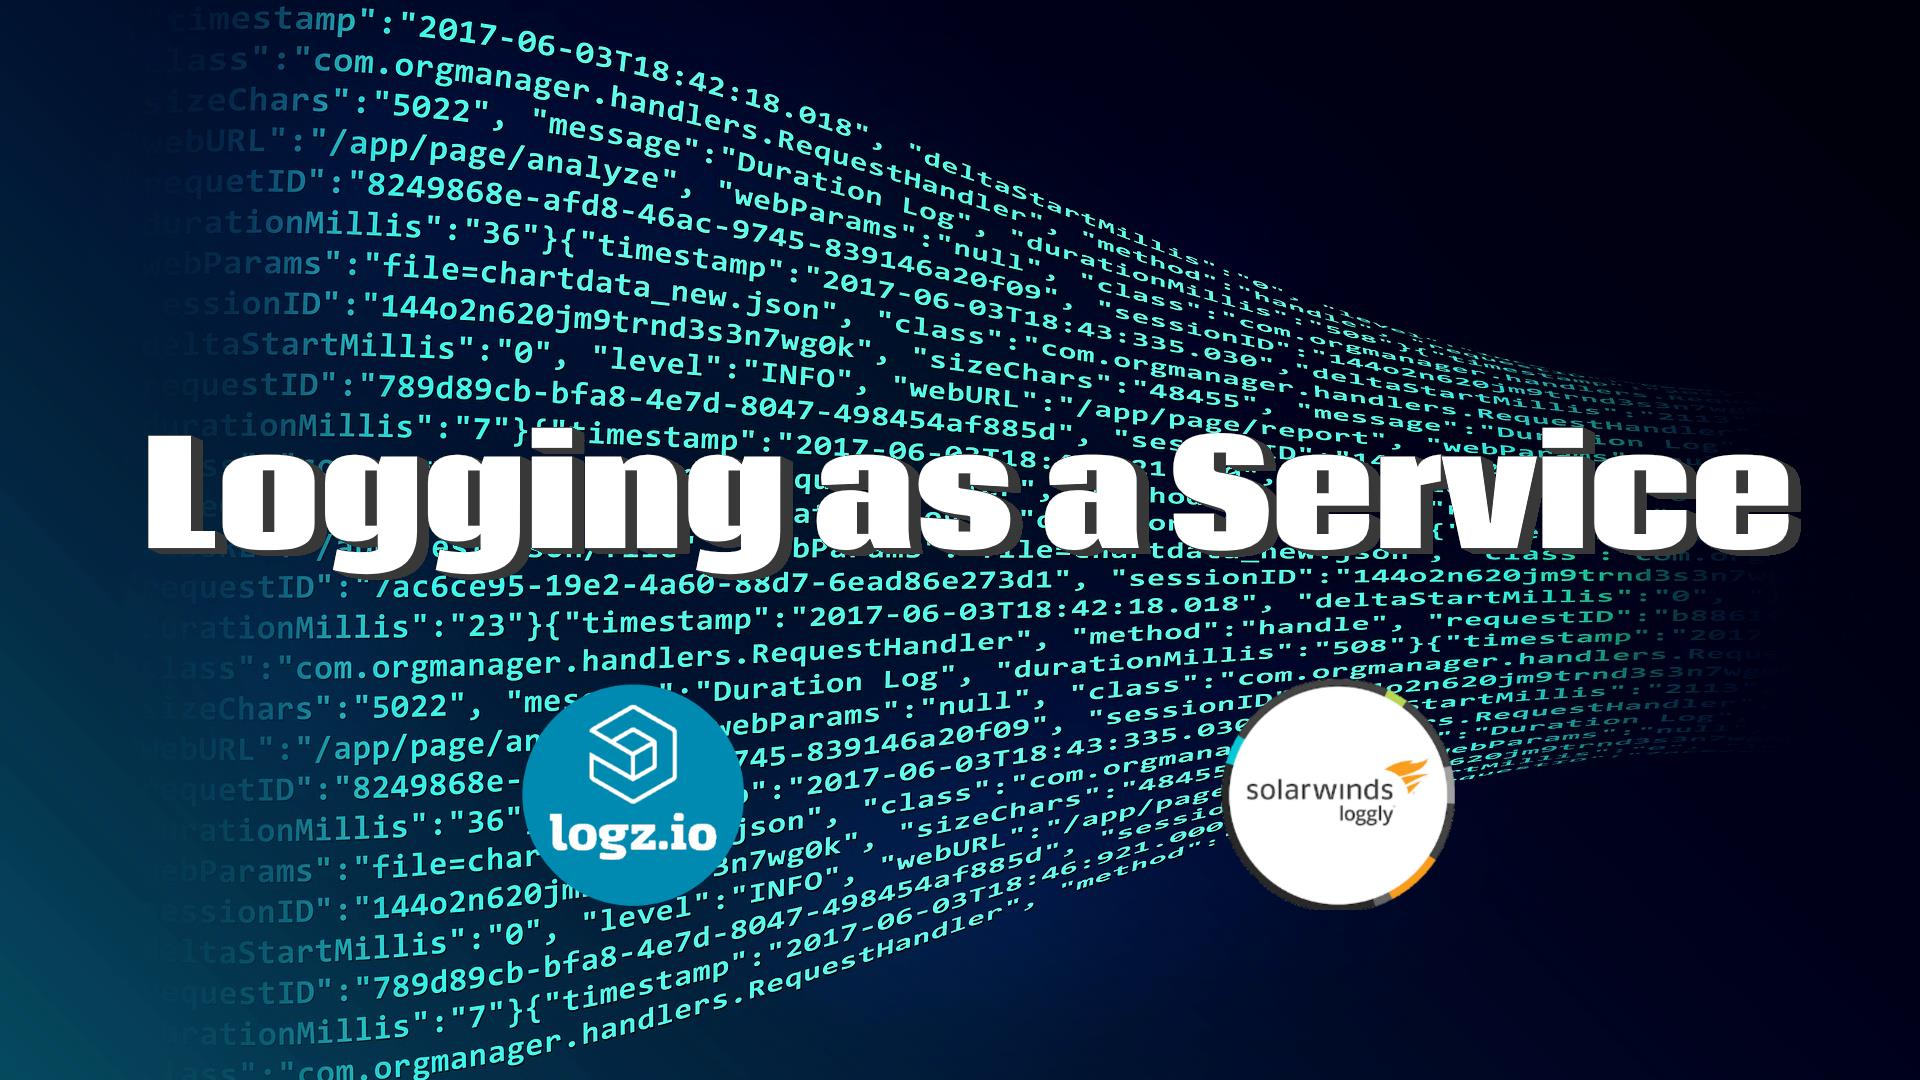 Logging as a Service with Loggly and Logz.io